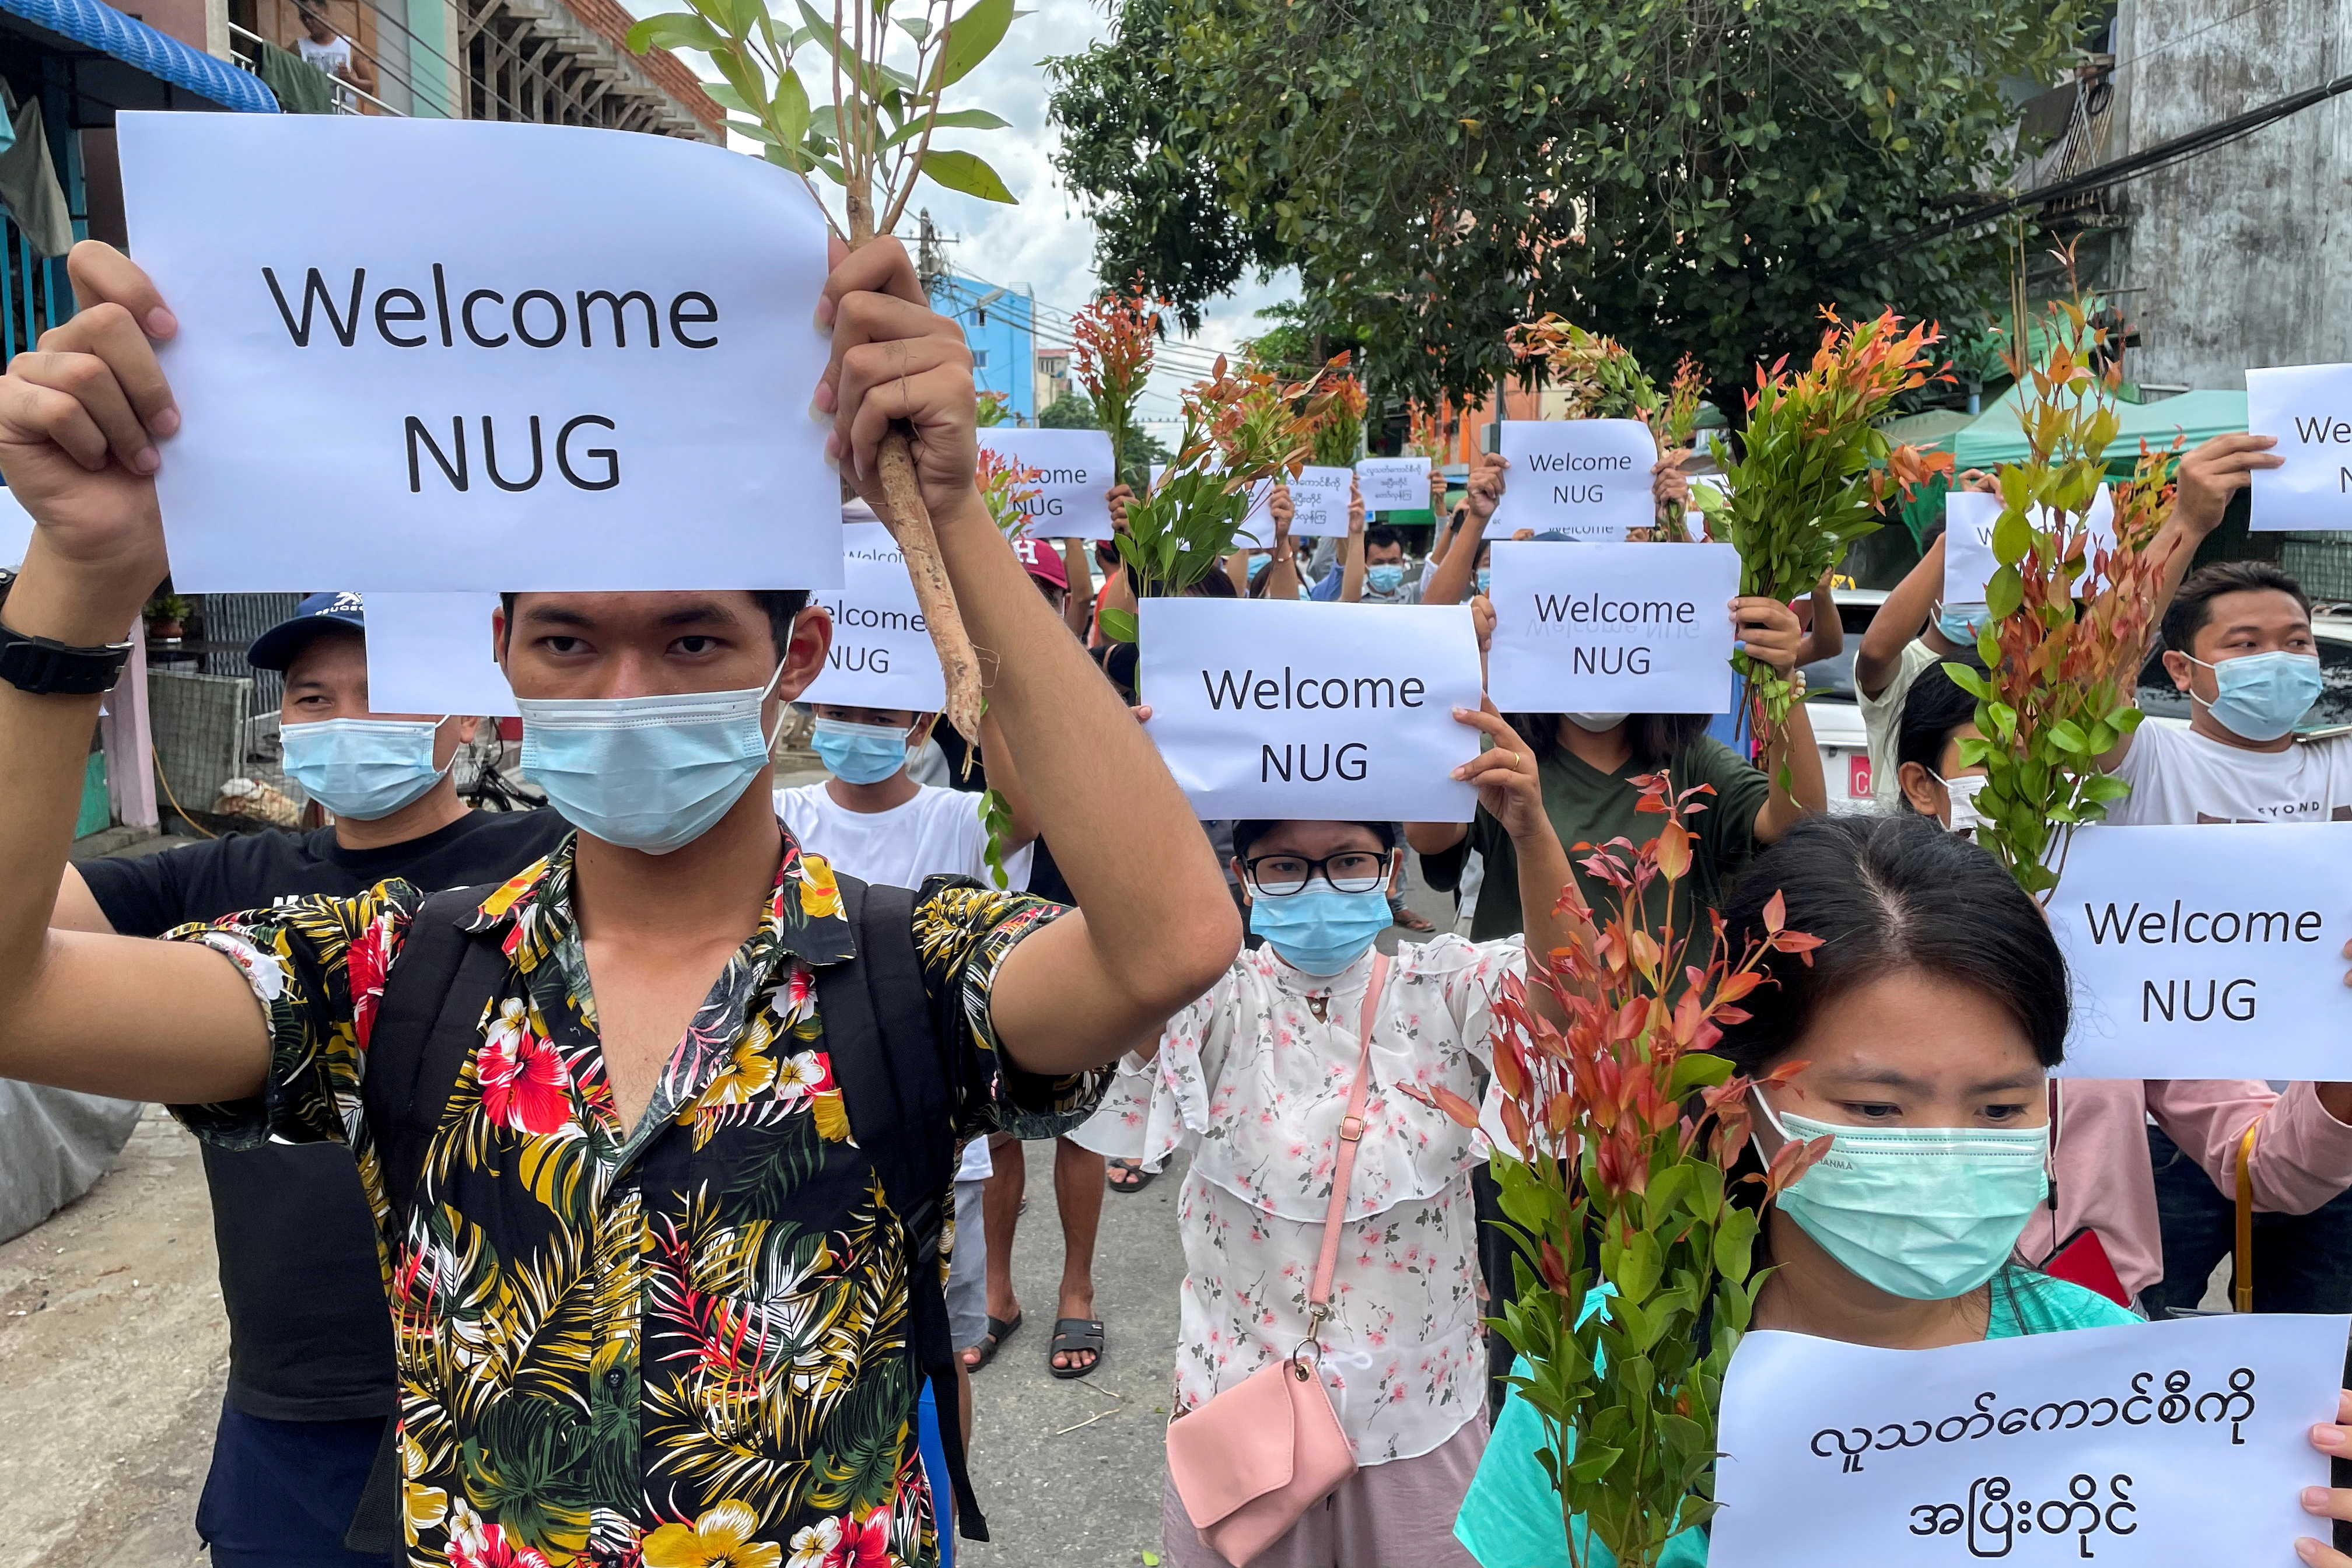 Anti-government protesters hold placards to show their support and welcome the new National Unity Government found by ousted NLD legislators and call to continue strike from traditional new year in Myanmar, in Yangon, Myanmar, April 17, 2021. REUTERS/Stringer/